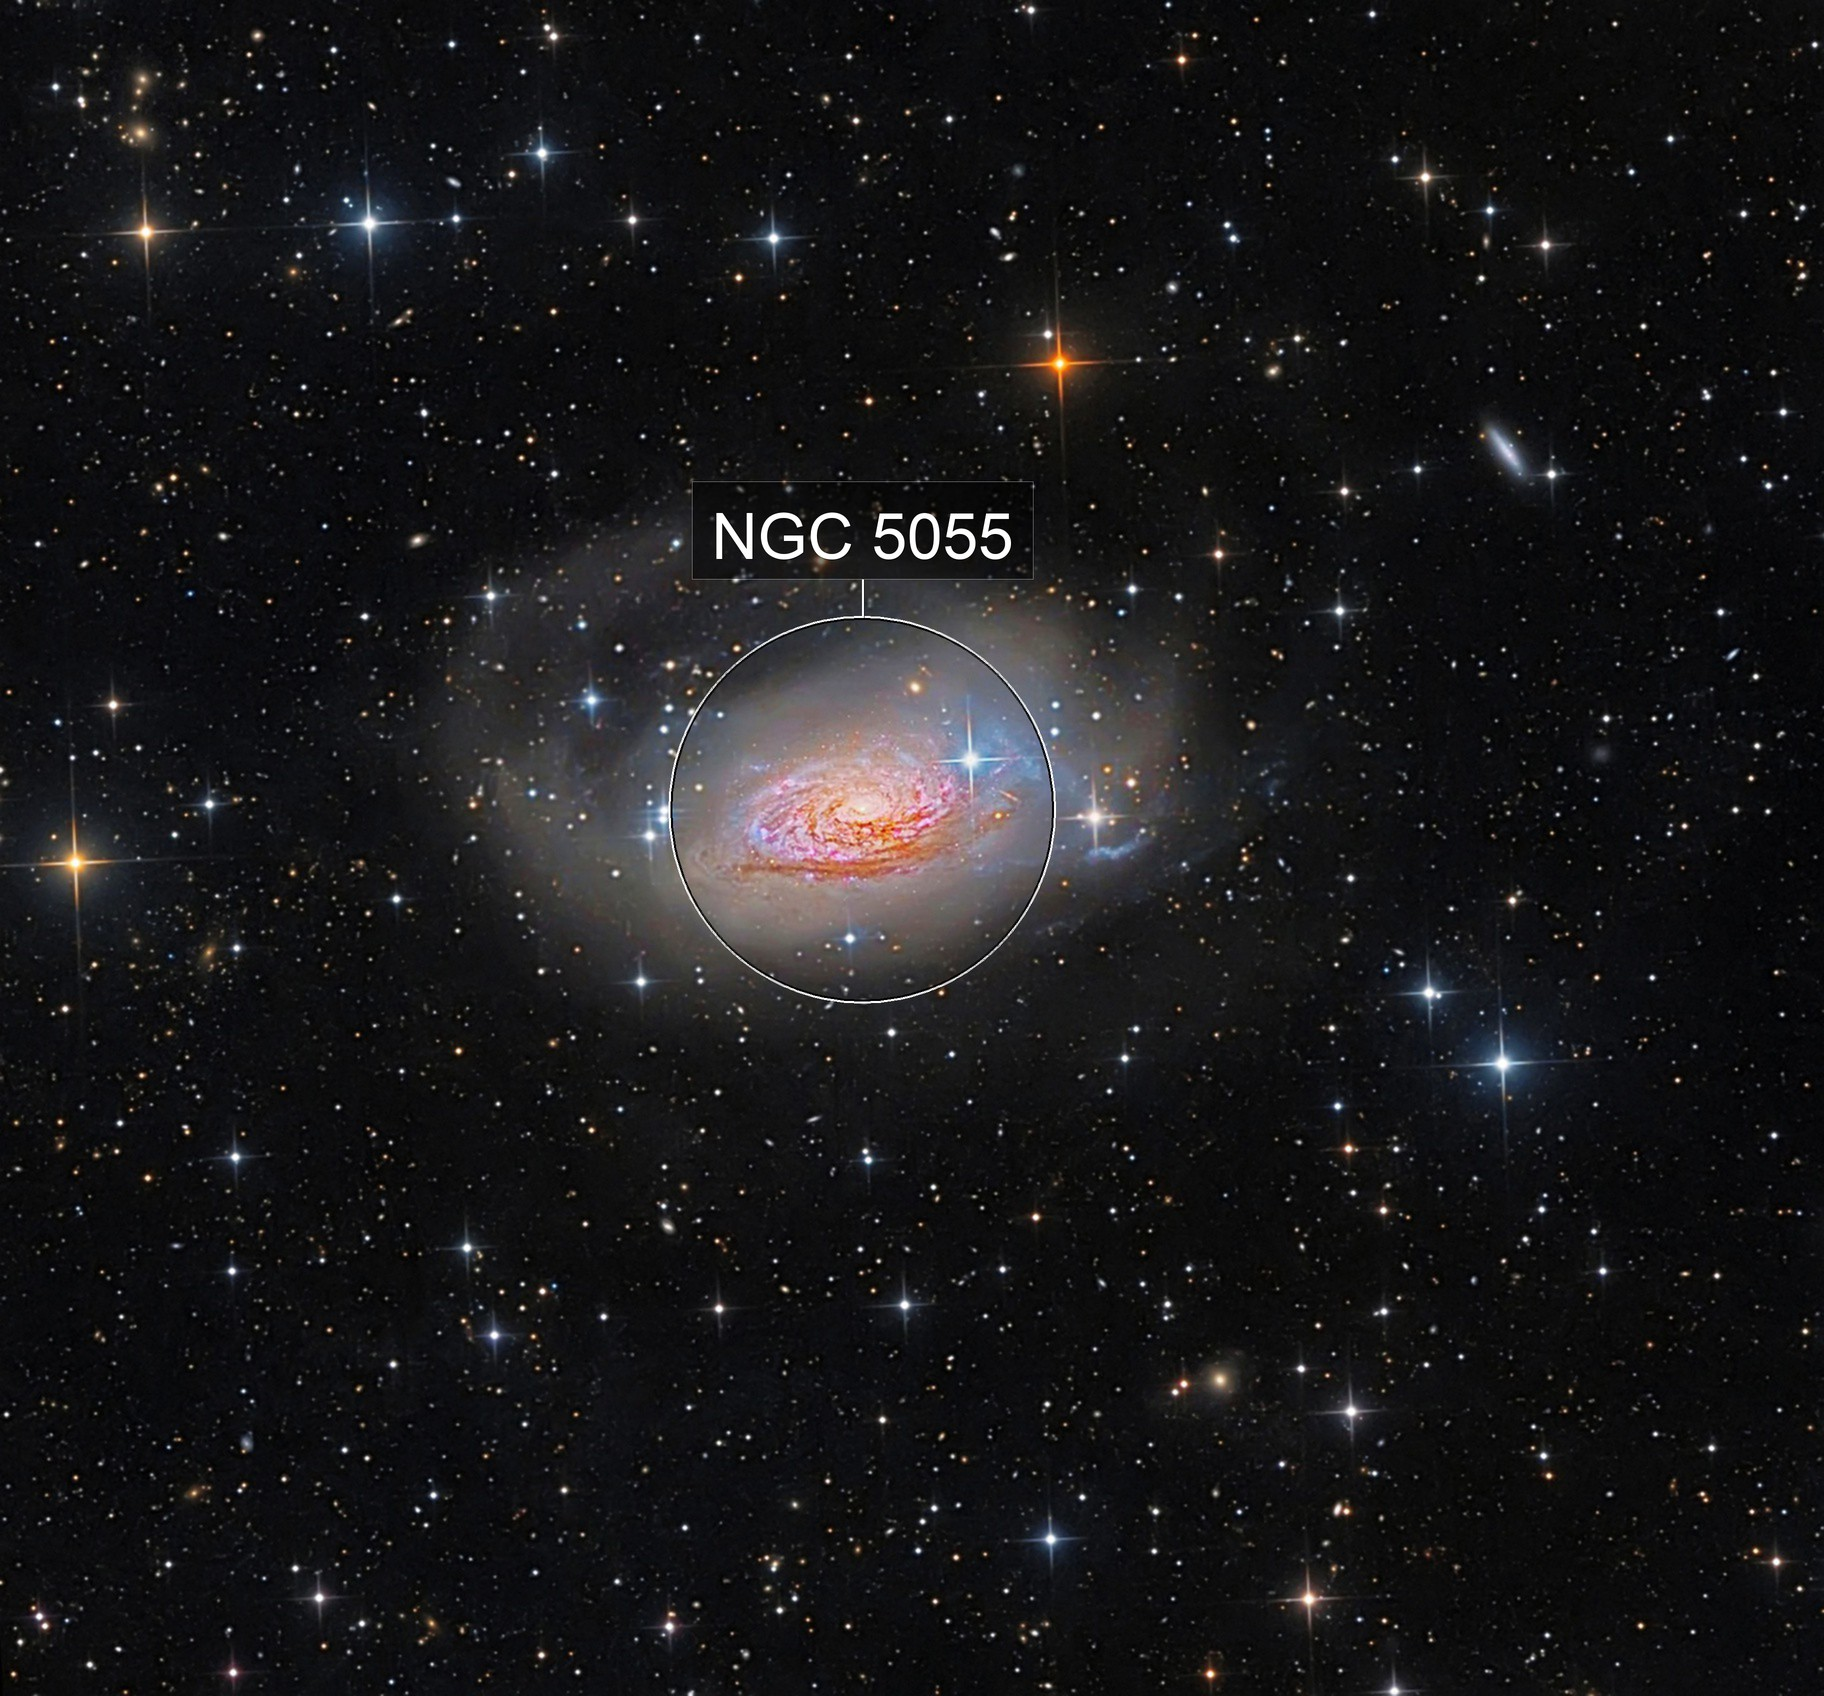 m63 with tidal streams and halo